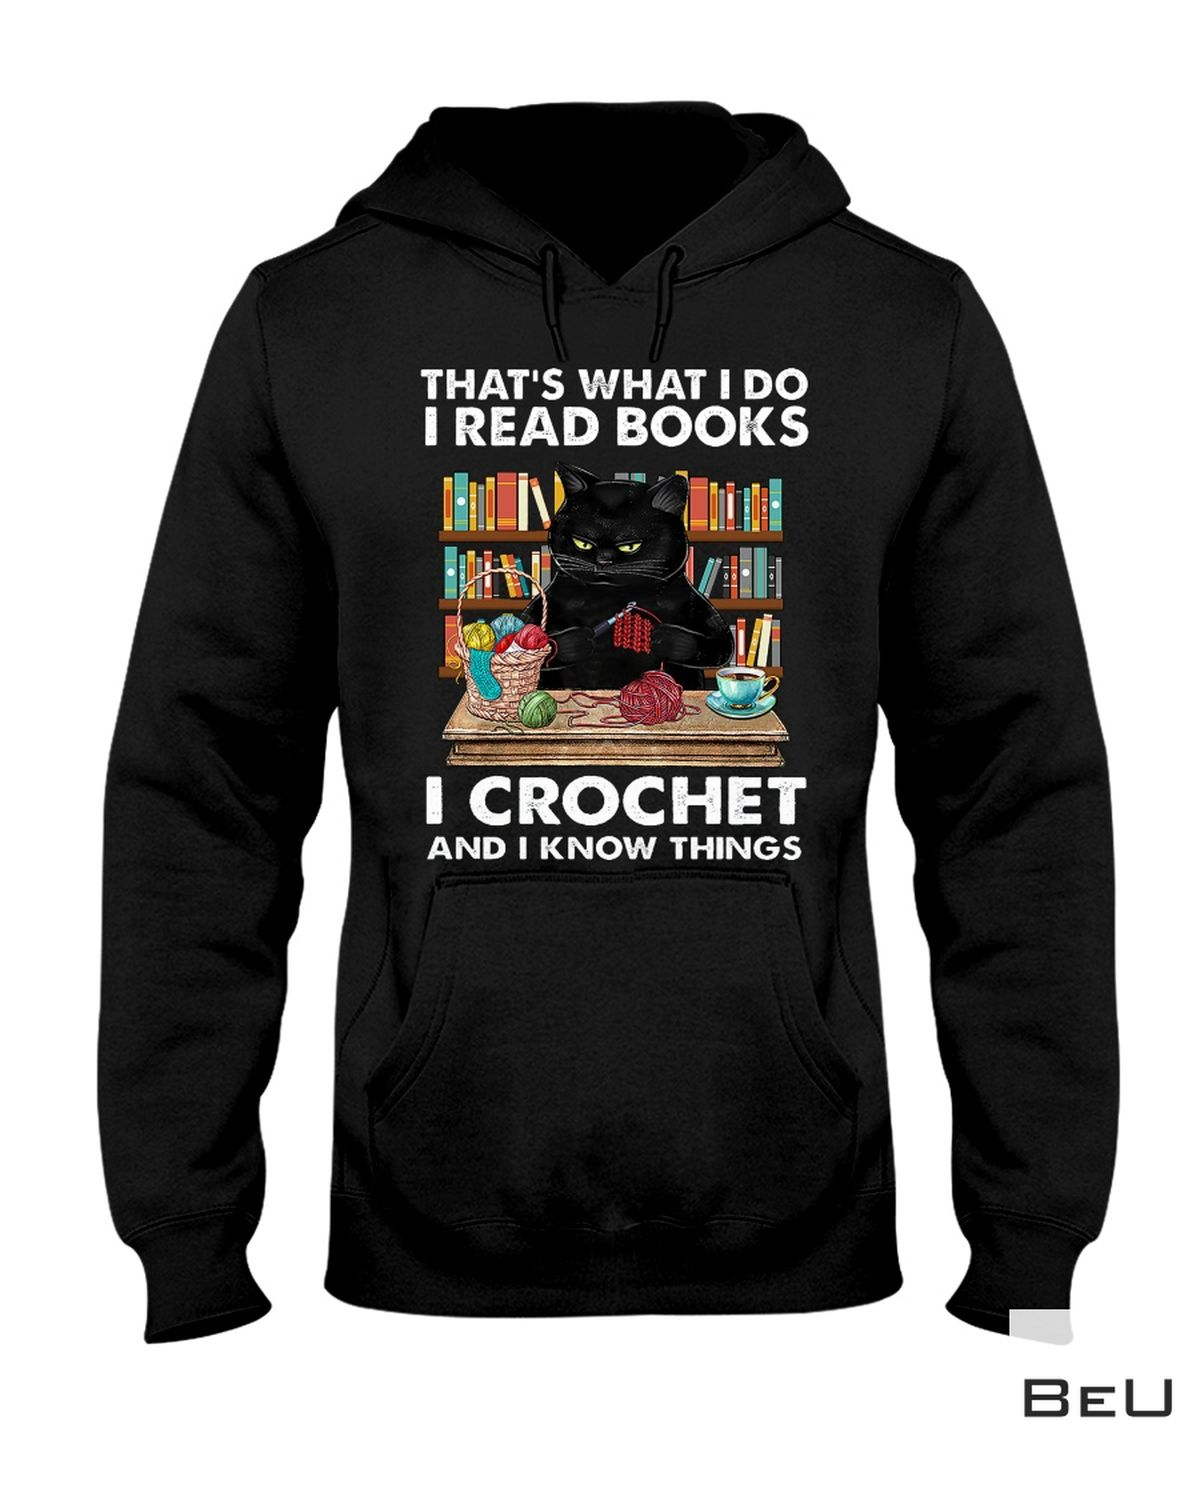 Limited Edition Black Cat That's What I Do I Read Books I Crochet Shirt, hoodie